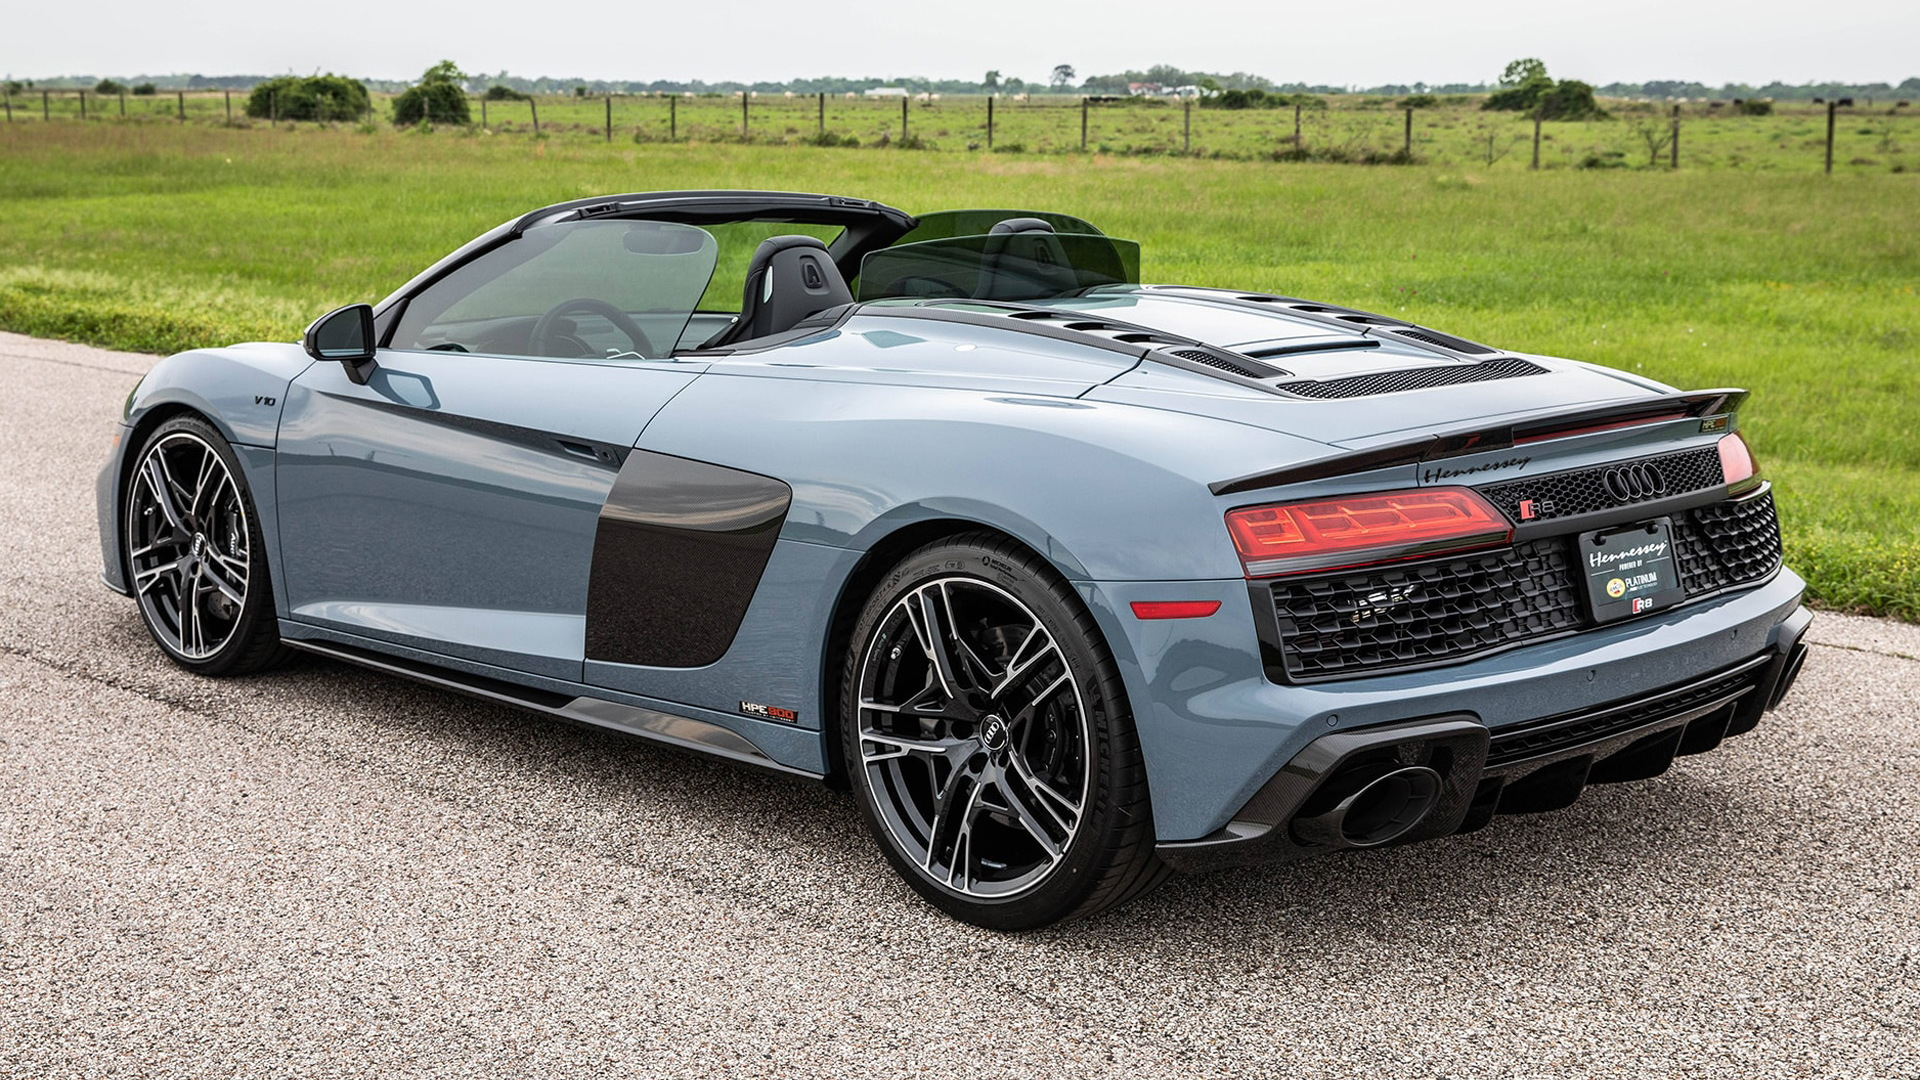 2020 Audi R8 V10 by Hennessey Performance Engineering